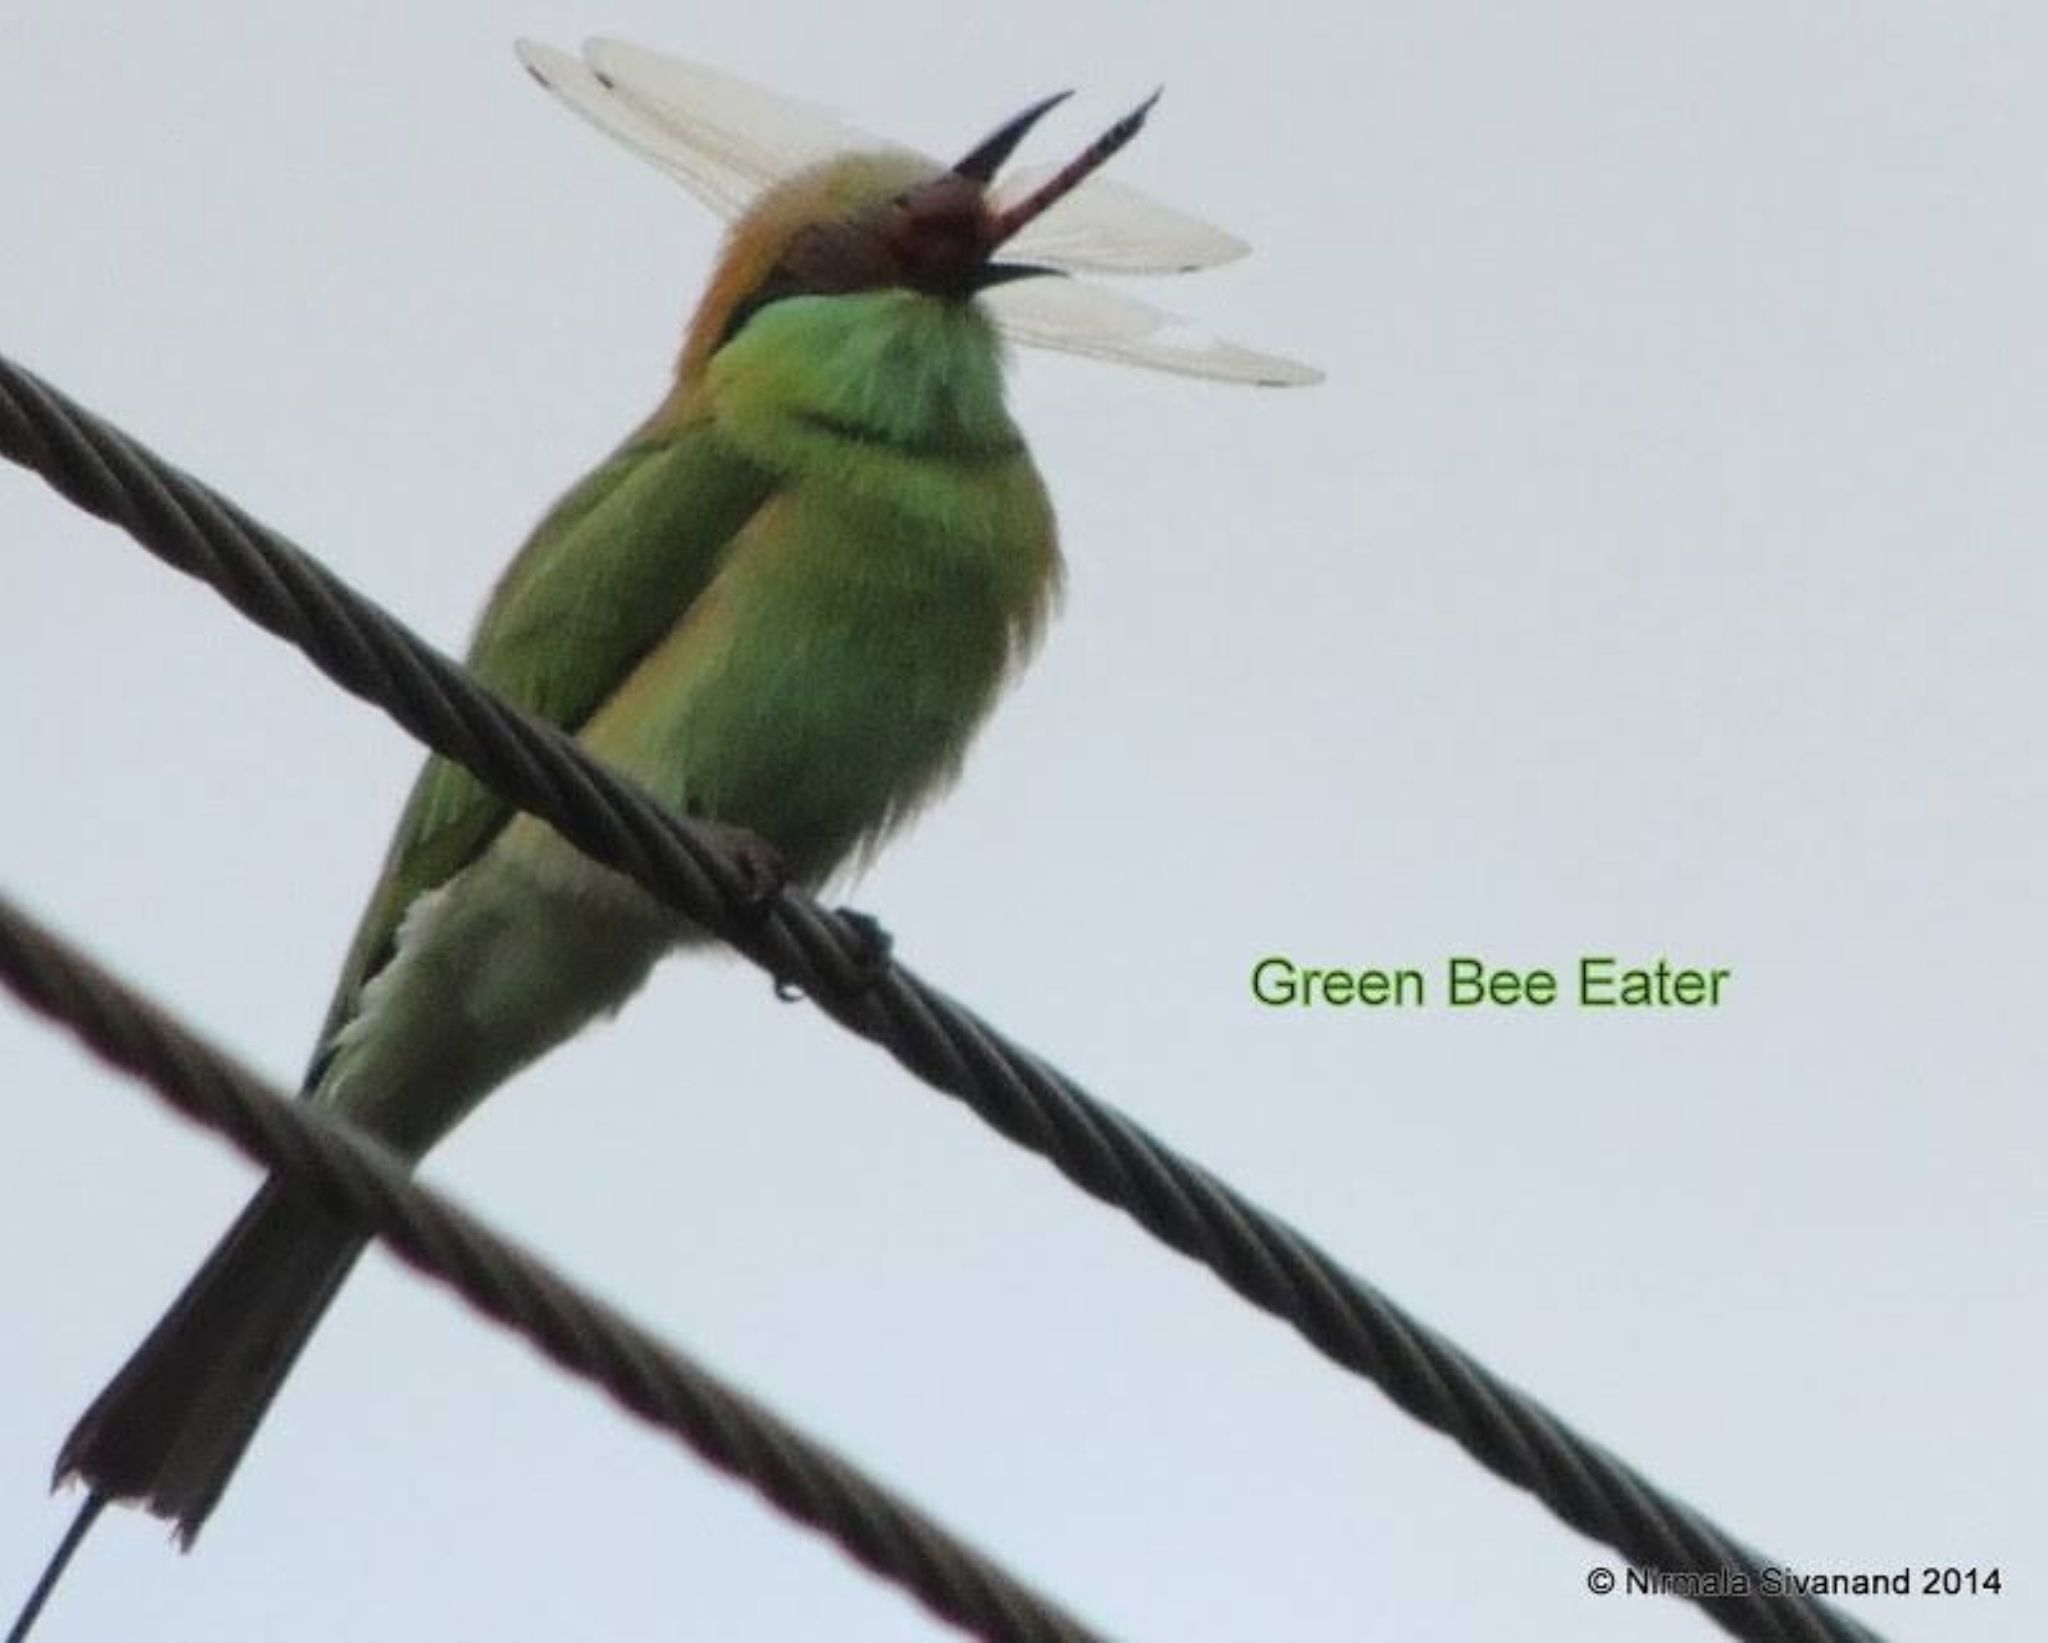 Green bee eater by Nirmala Sivanand